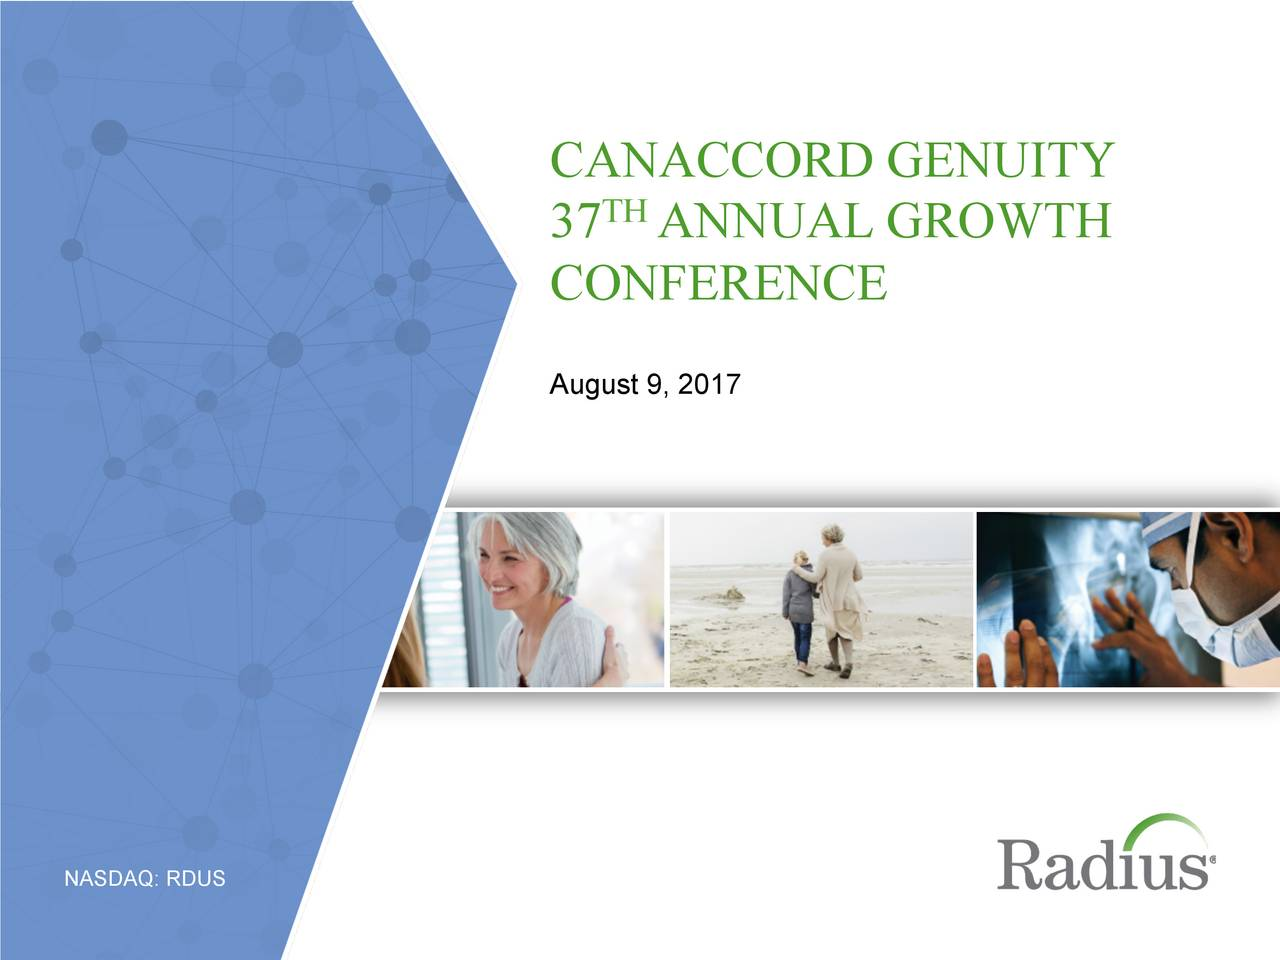 37 THANNUAL GROWTH CONFERENCE August 9, 2017 NASDAQ: RDUS